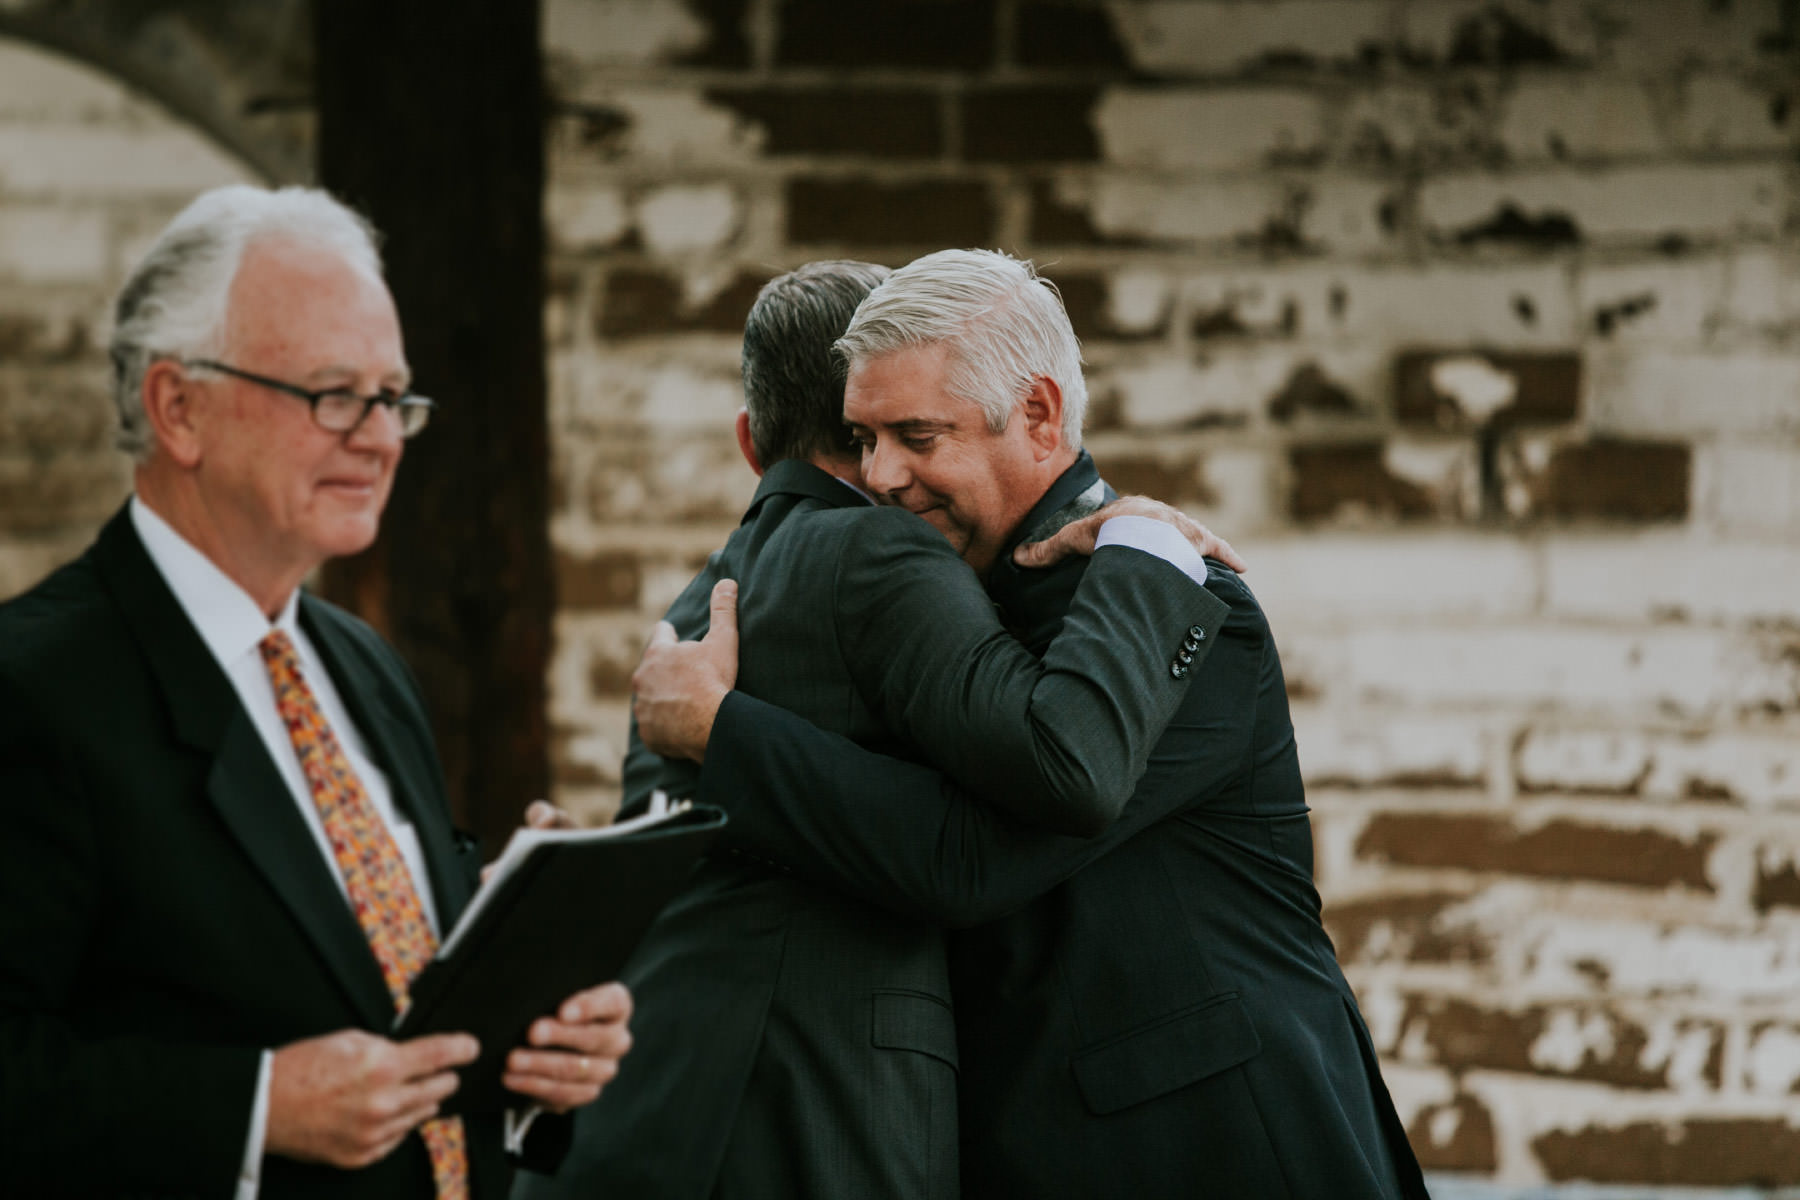 Groom and best man hugging during ceremony